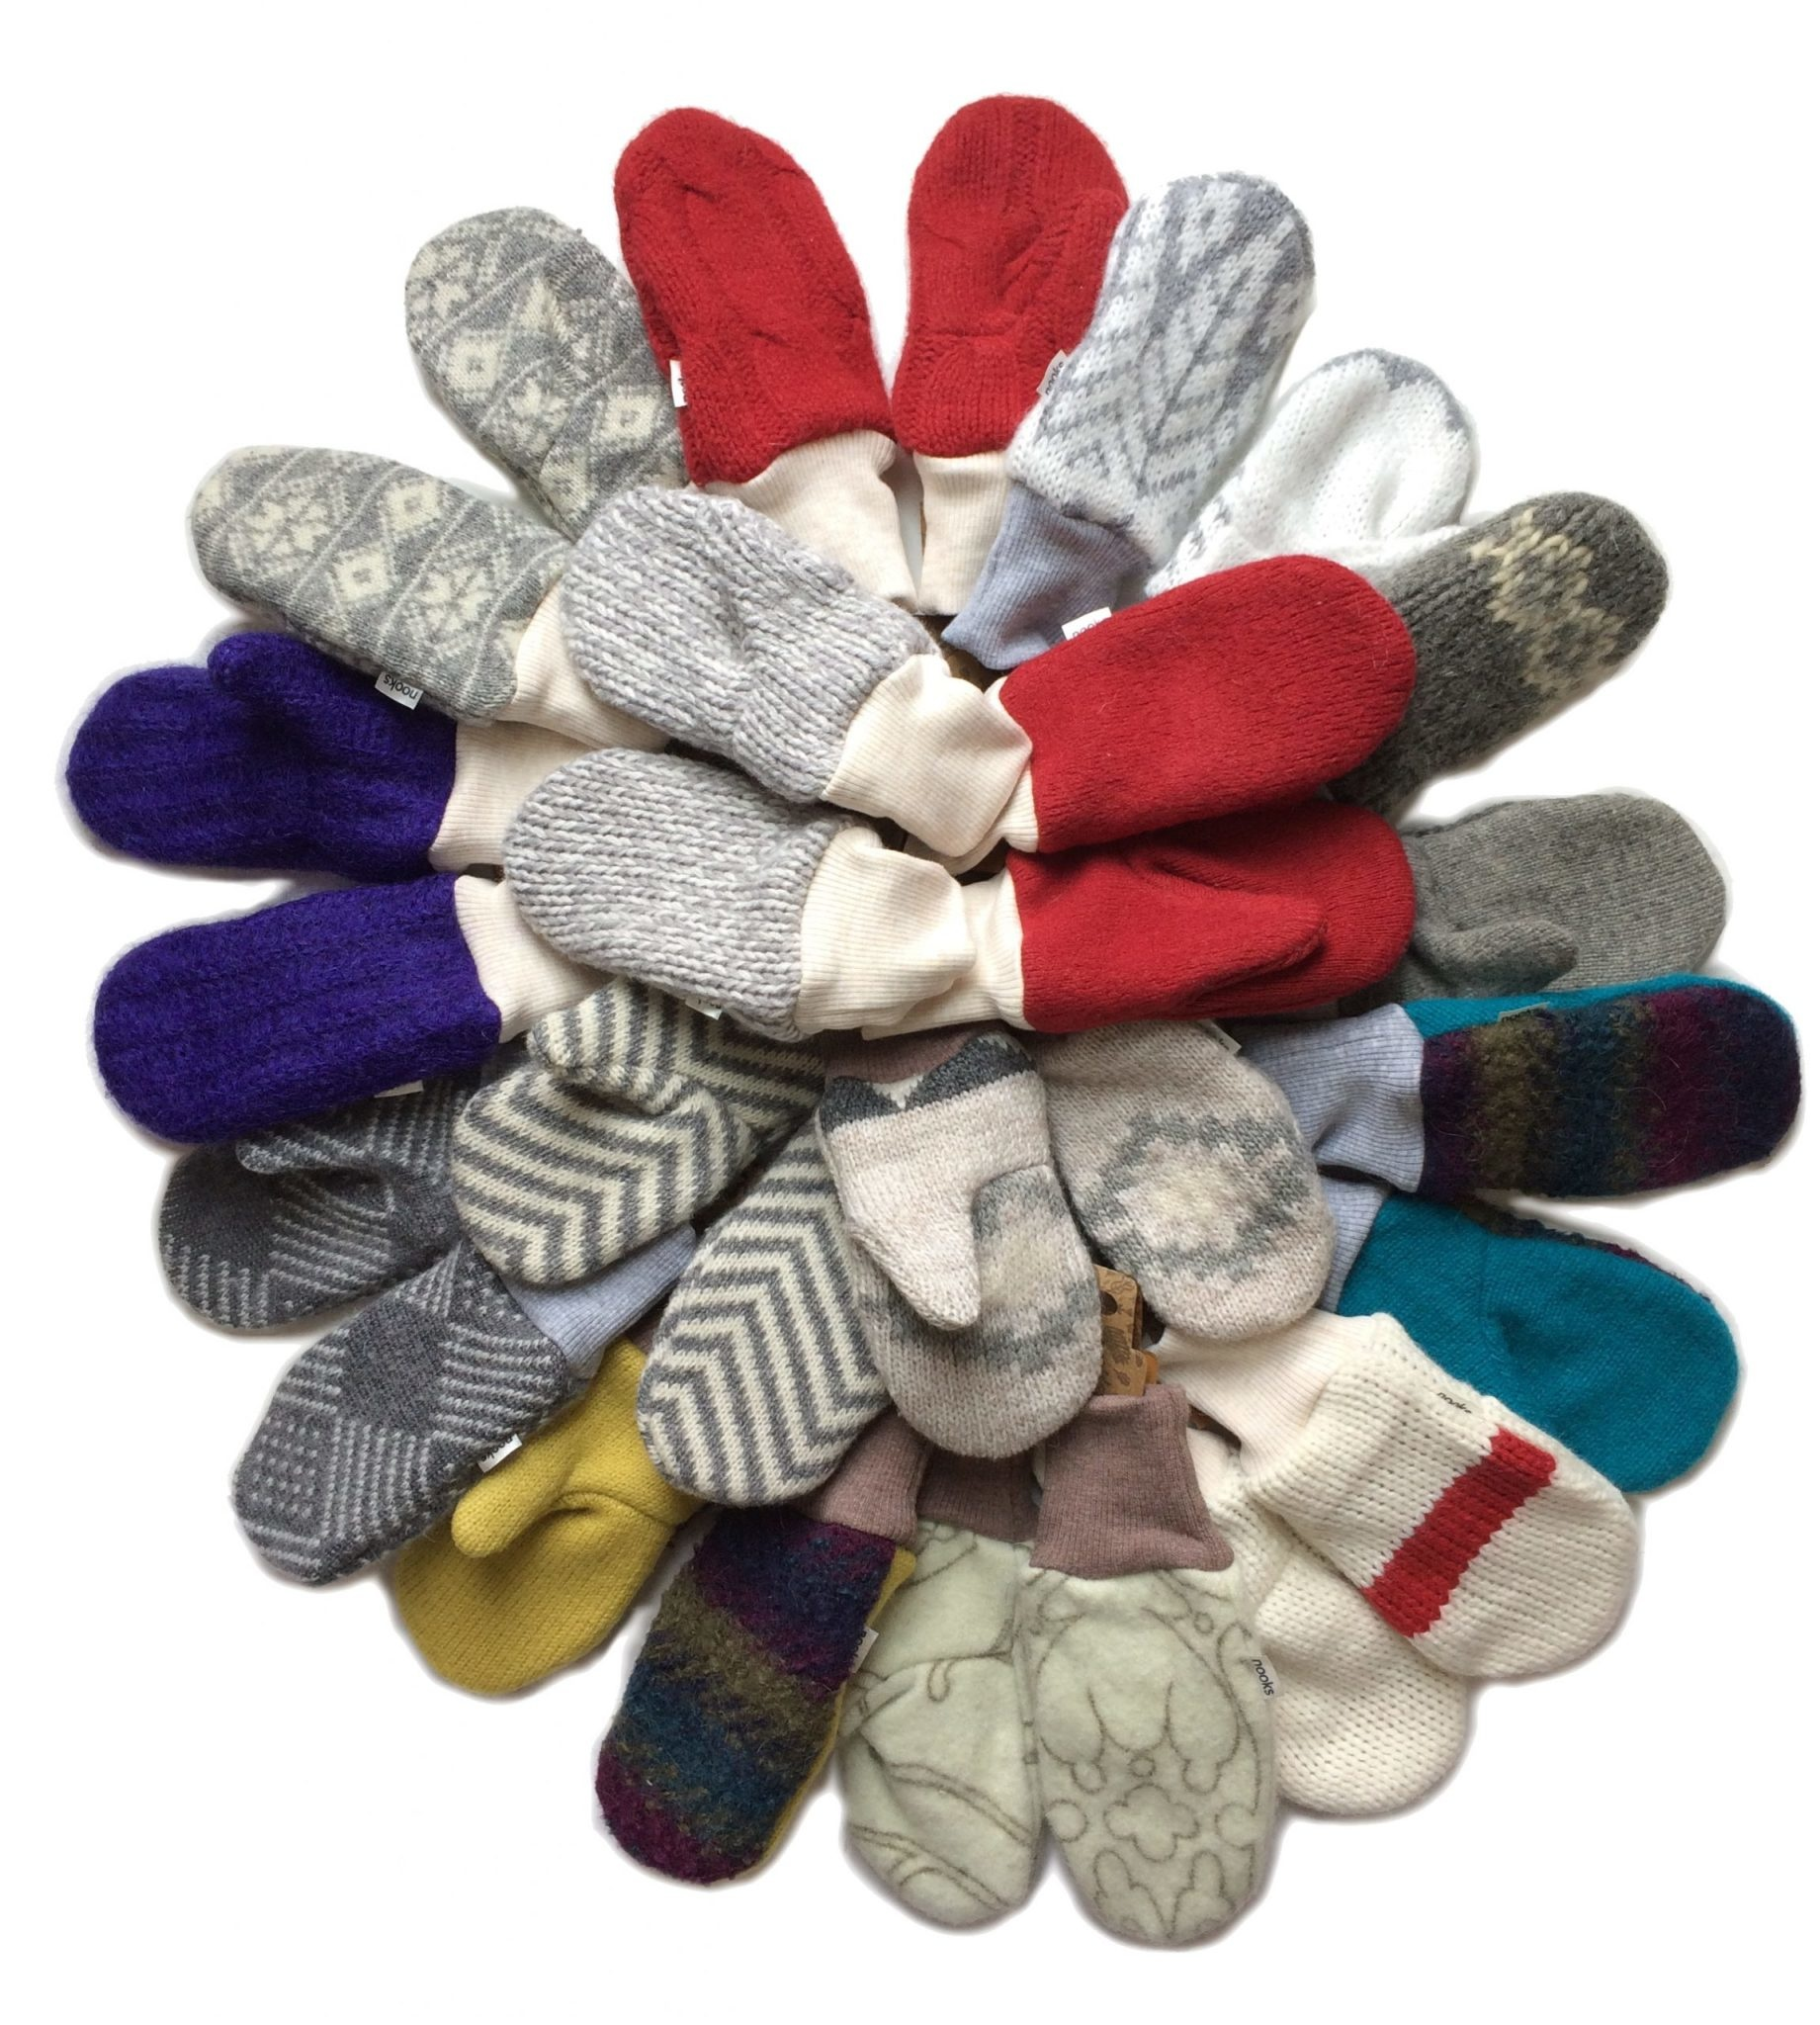 Nooks Upcycled Wool Mittens - 2-4T